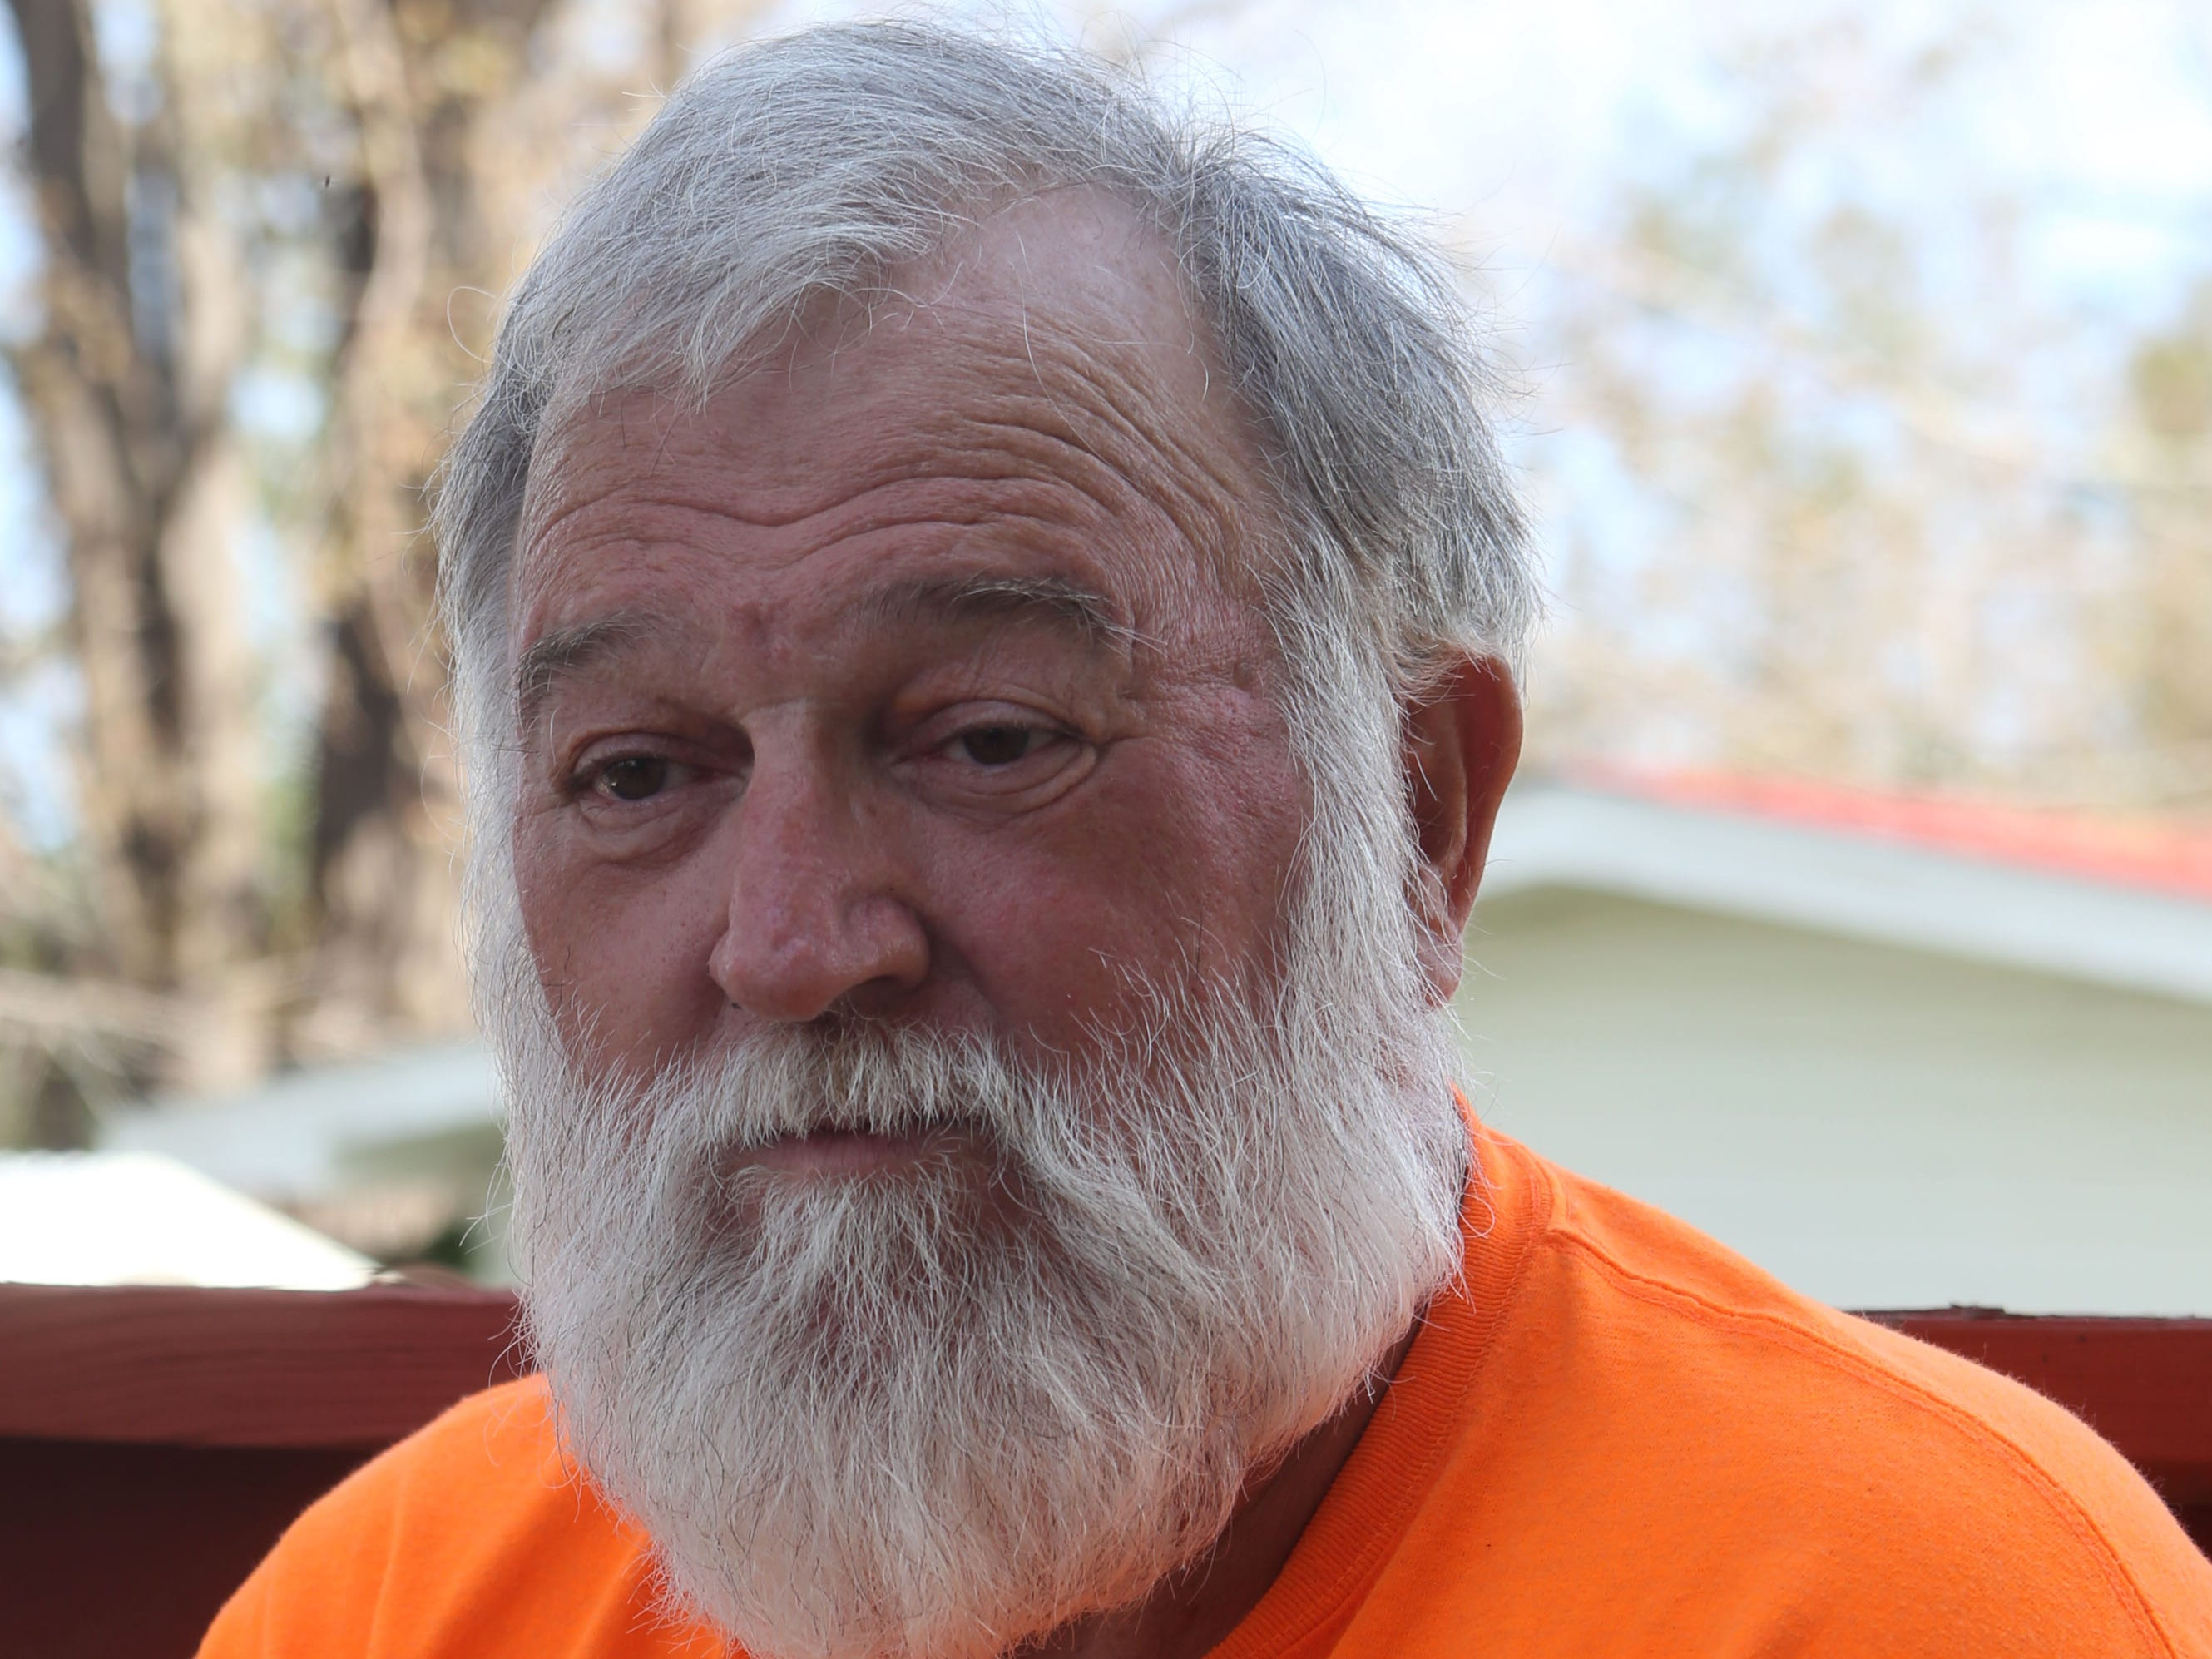 Eugene Radney, grandfather of Sarah Radney, an 11 year old girl who died during Hurricane Michael in Donalsonville, Ga., speaks about what took place during the hurricane on Thursday, Oct. 18, 2018.